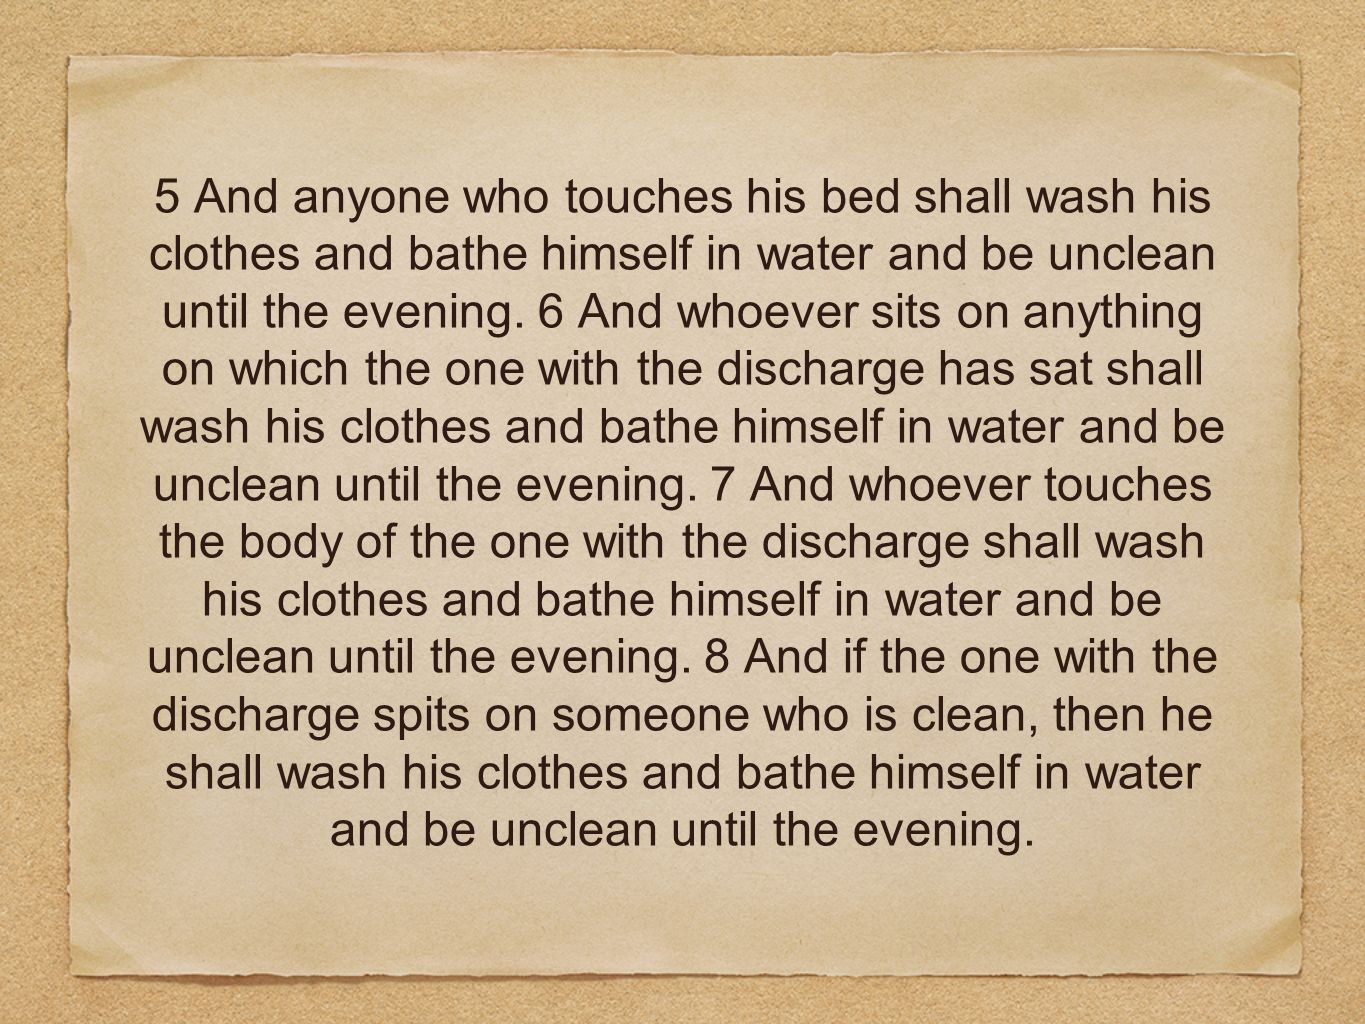 5 And anyone who touches his bed shall wash his clothes and bathe himself in water and be unclean until the evening. 6 And whoever sits on anything on